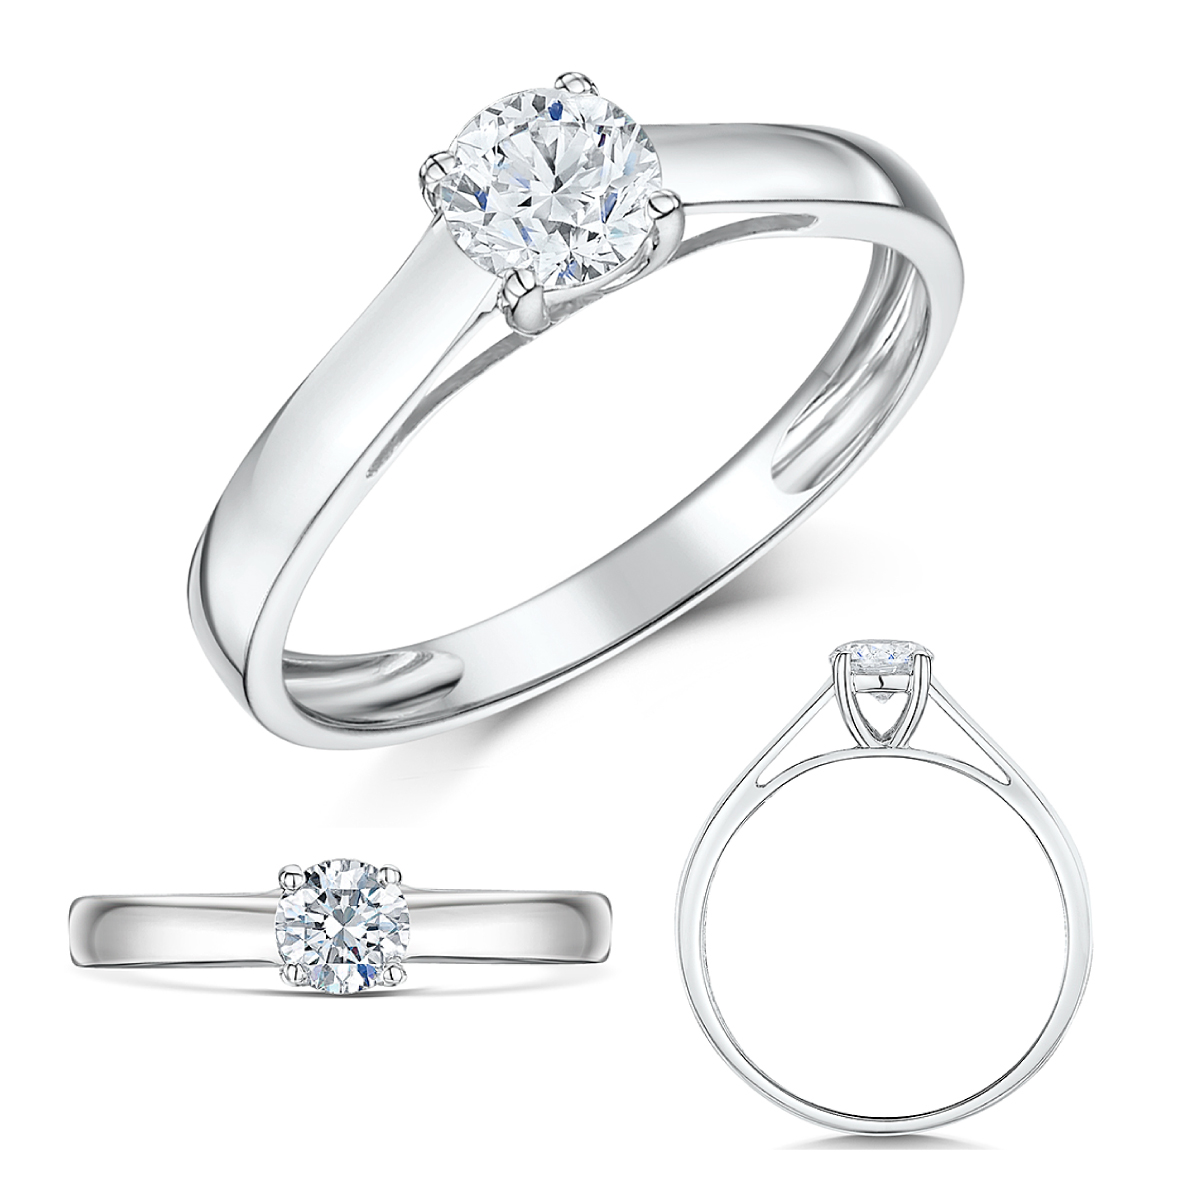 setting carat topic in a petite plain wear mine diamond half size prong on with i fingers is